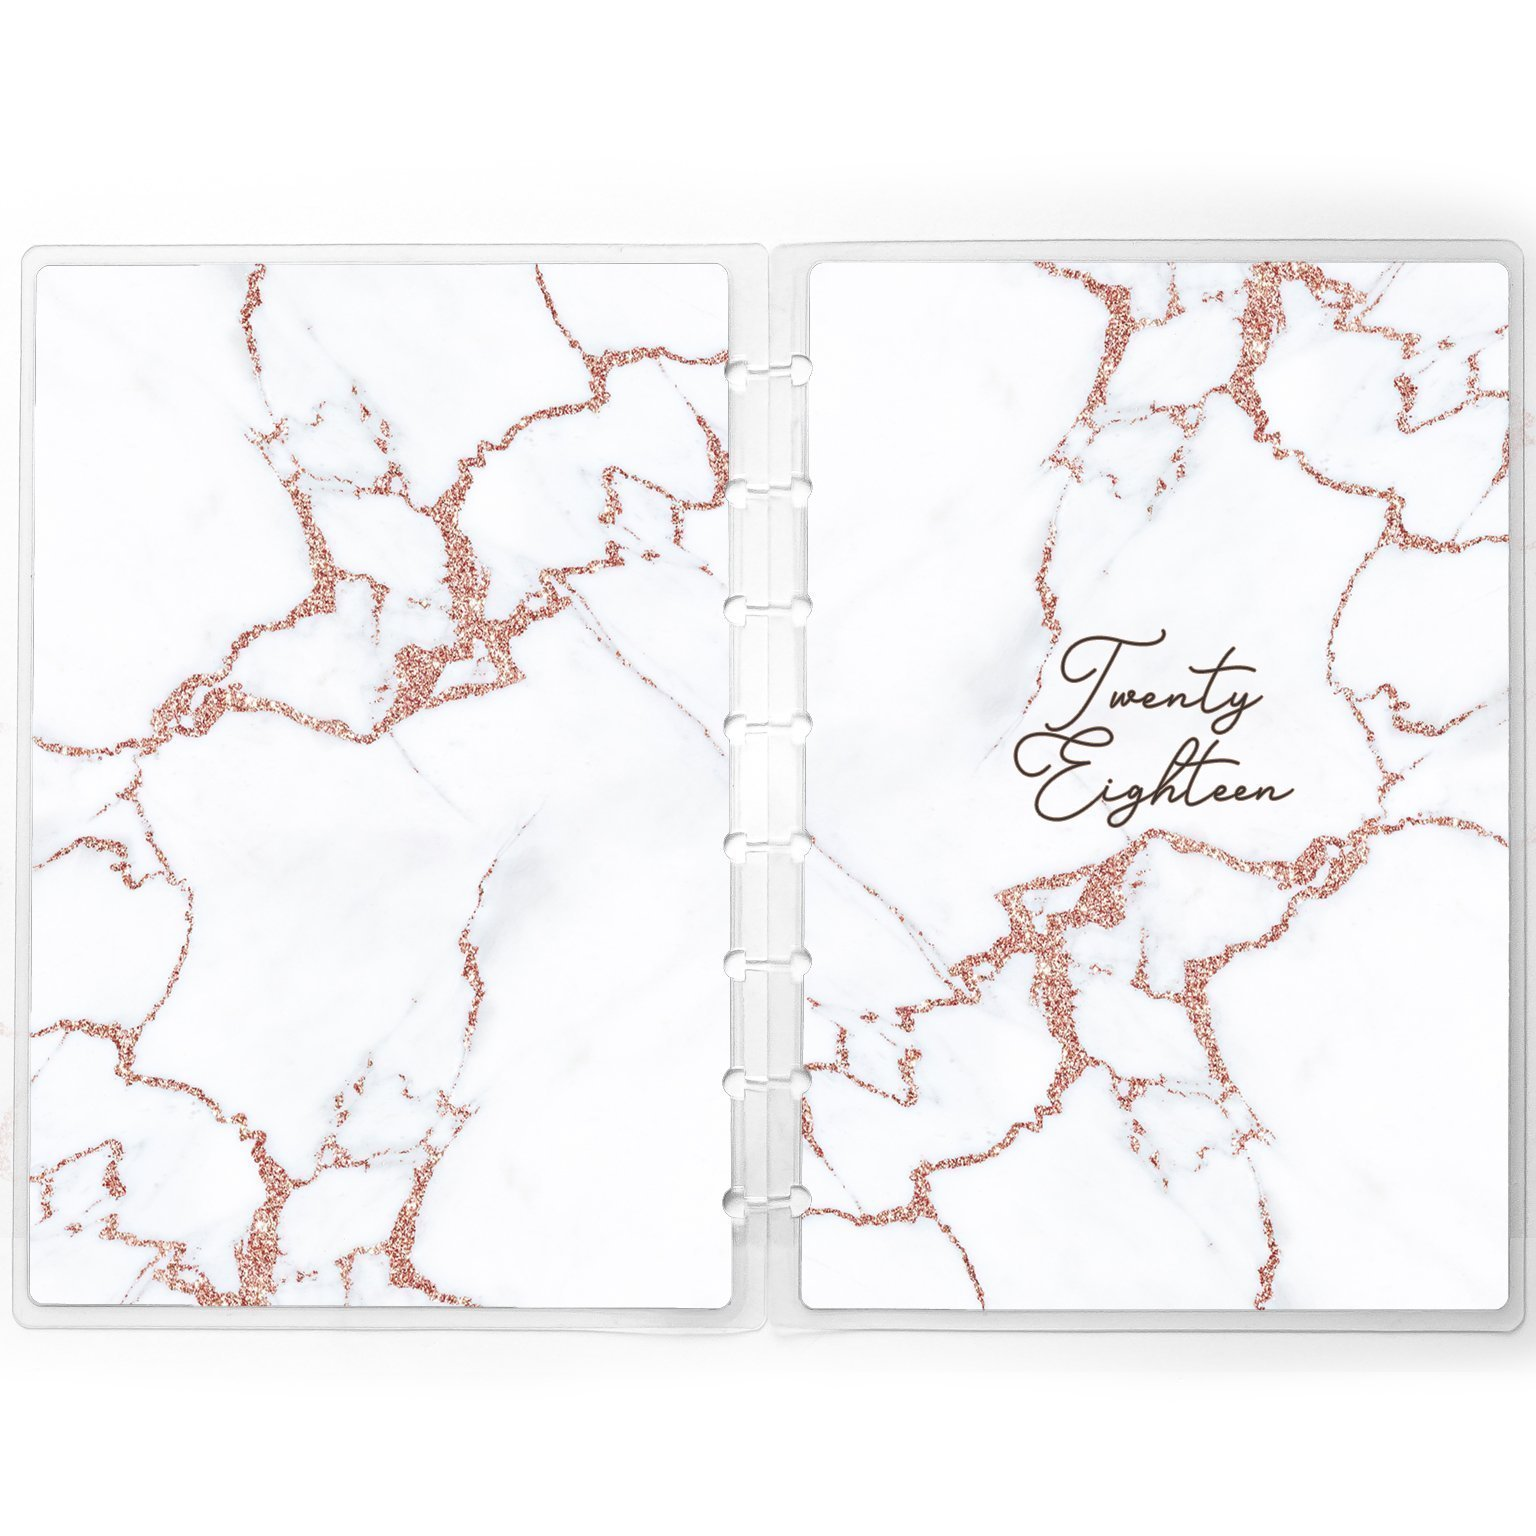 White Marble Planner Cover for use with Staples Arc Happy Planner TUL with Faux Rose Gold | Personalized